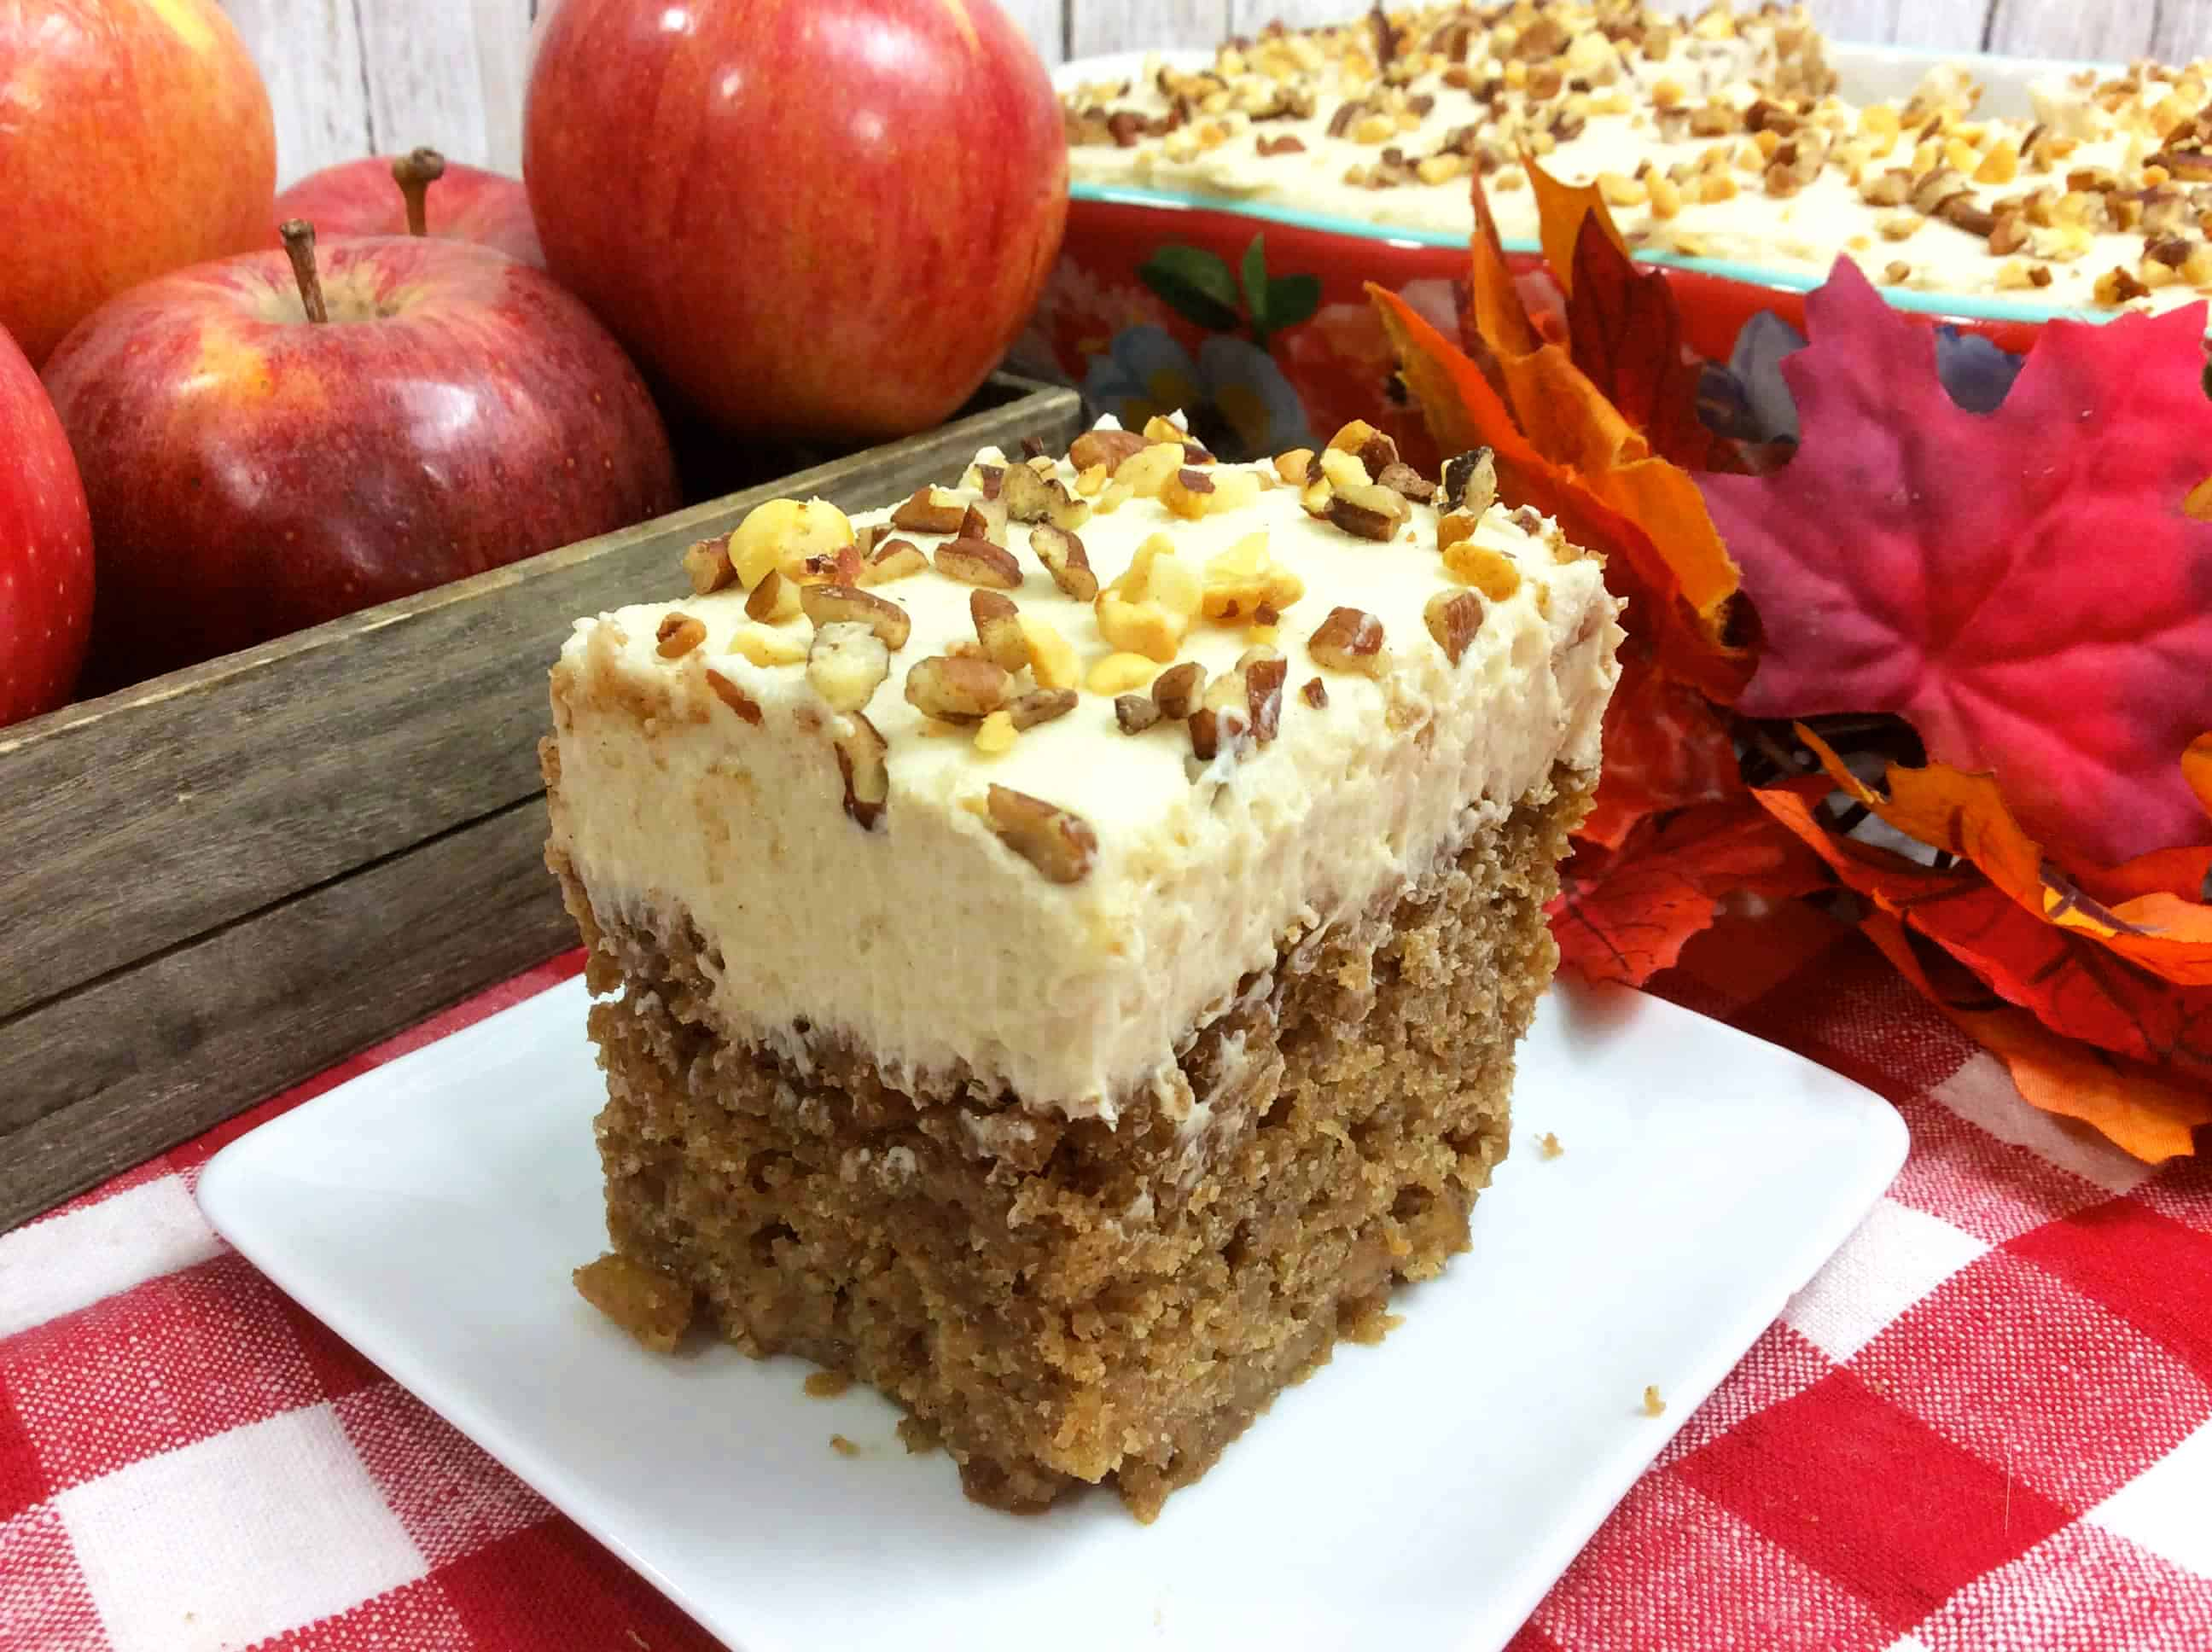 Orange Apple Spice Cake on a white plate with apples and a red checked table cloth